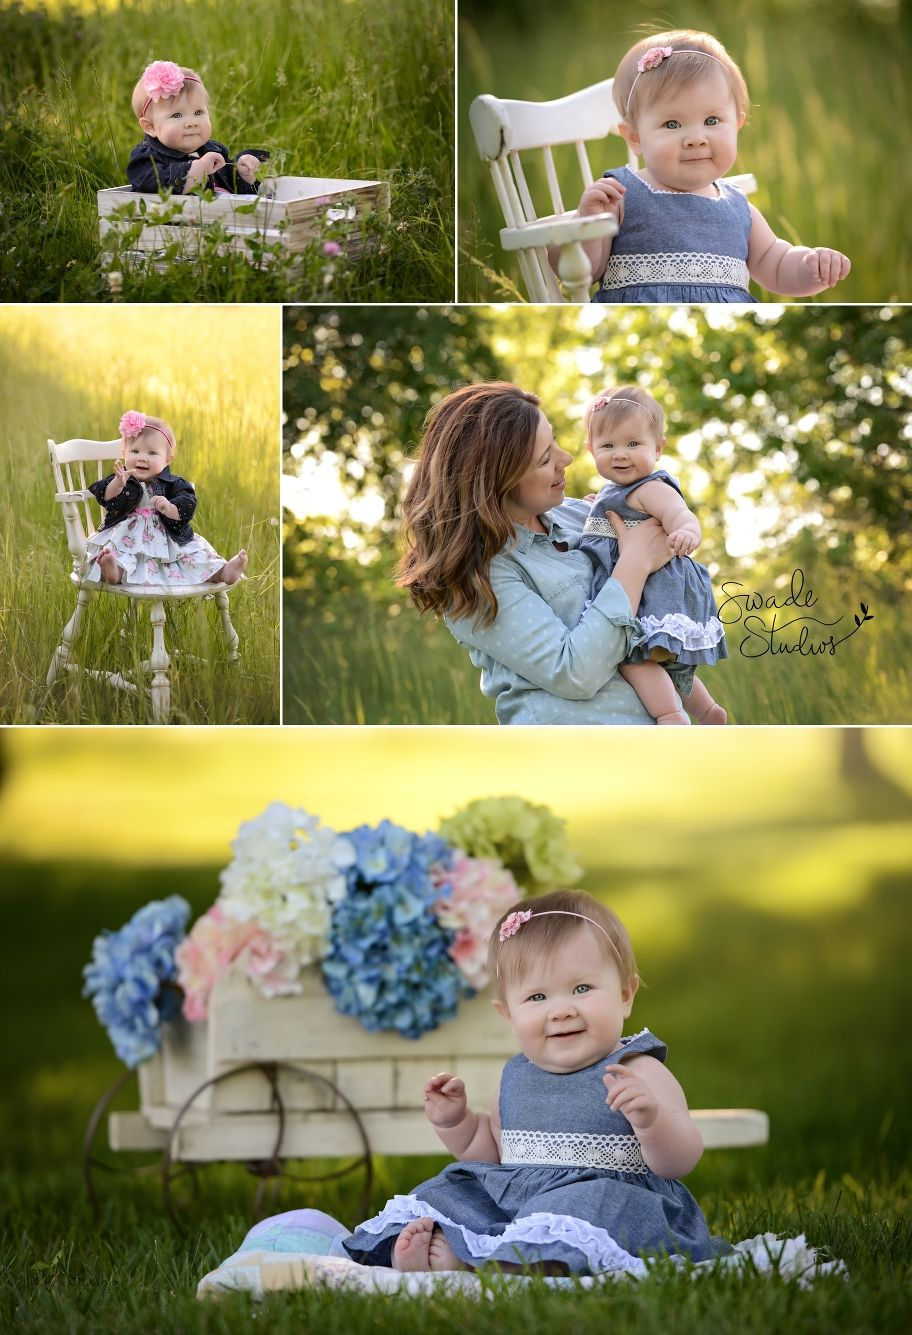 Baby Girl Photoshoot Outdoor : photoshoot, outdoor, Photography, Kansas, Swade, Studios, Spring, Pictures,, Easter, Photoshoot, Baby,, Photos